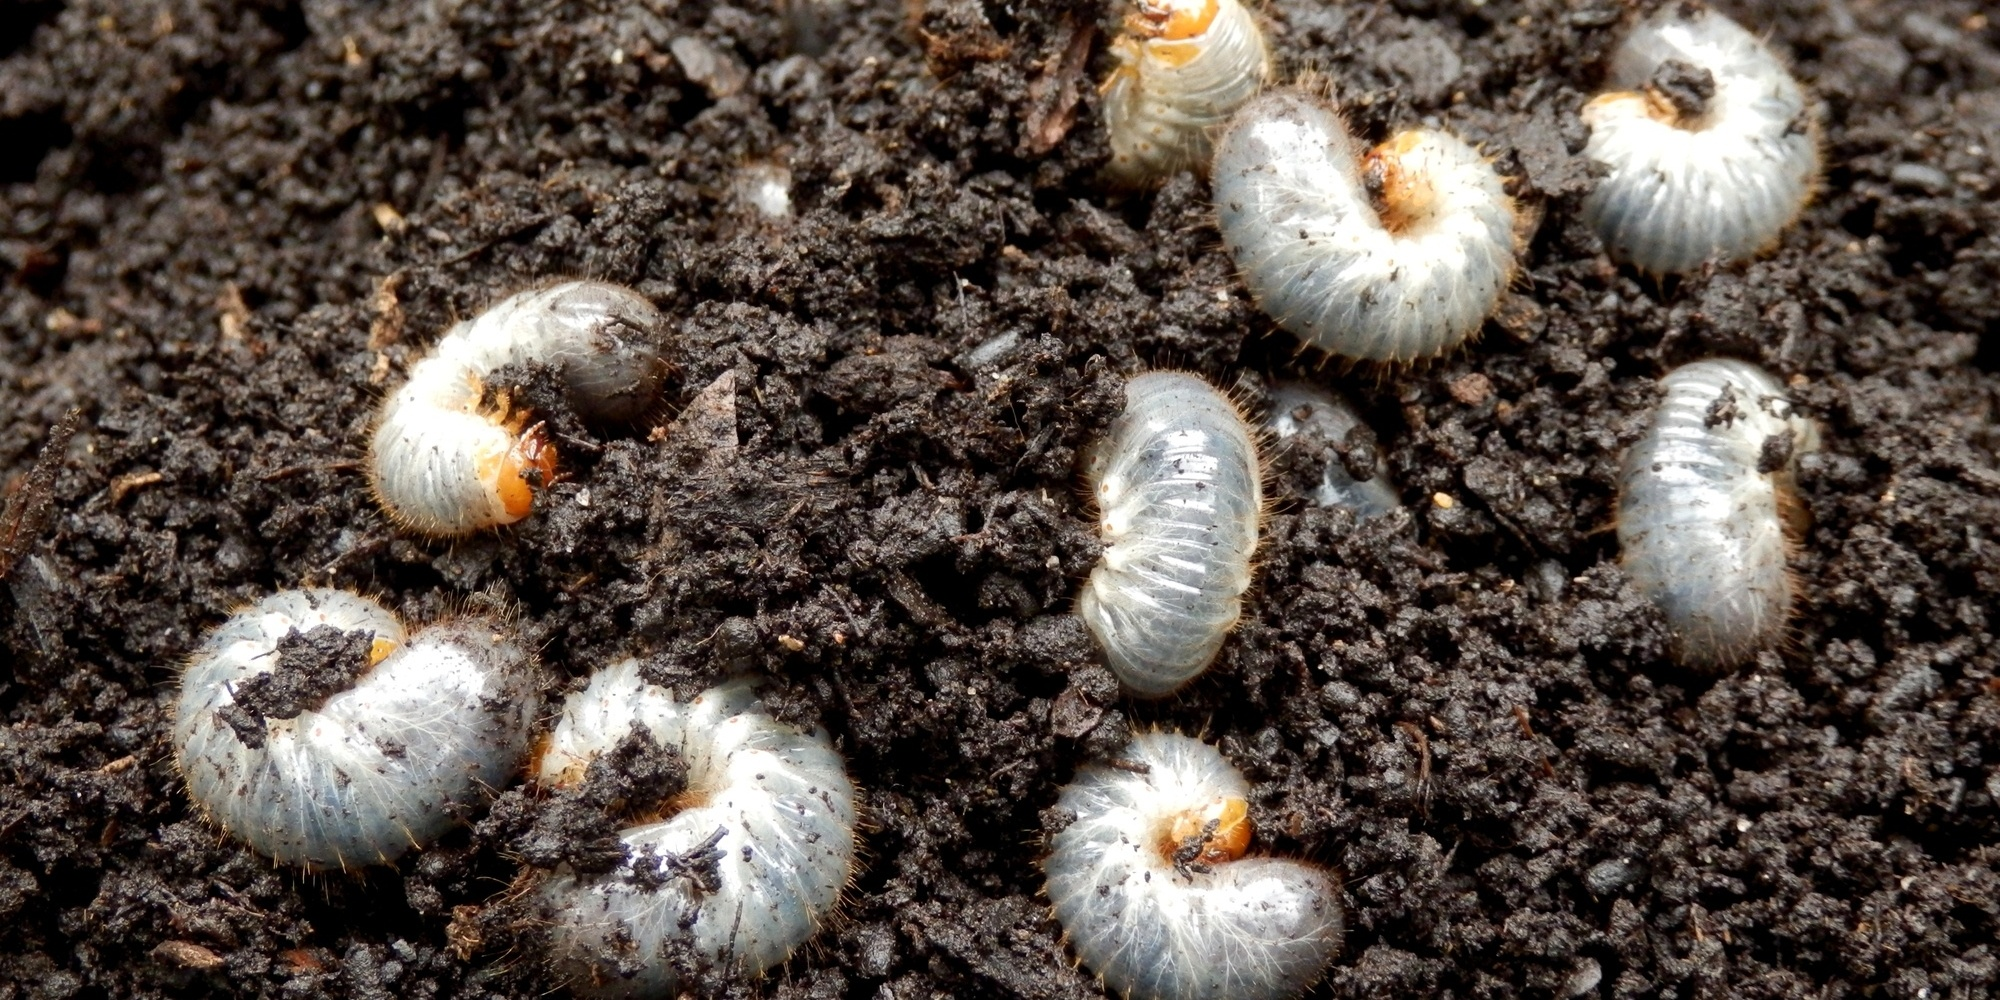 white-grubs-in-lawn-583223-edited.jpg